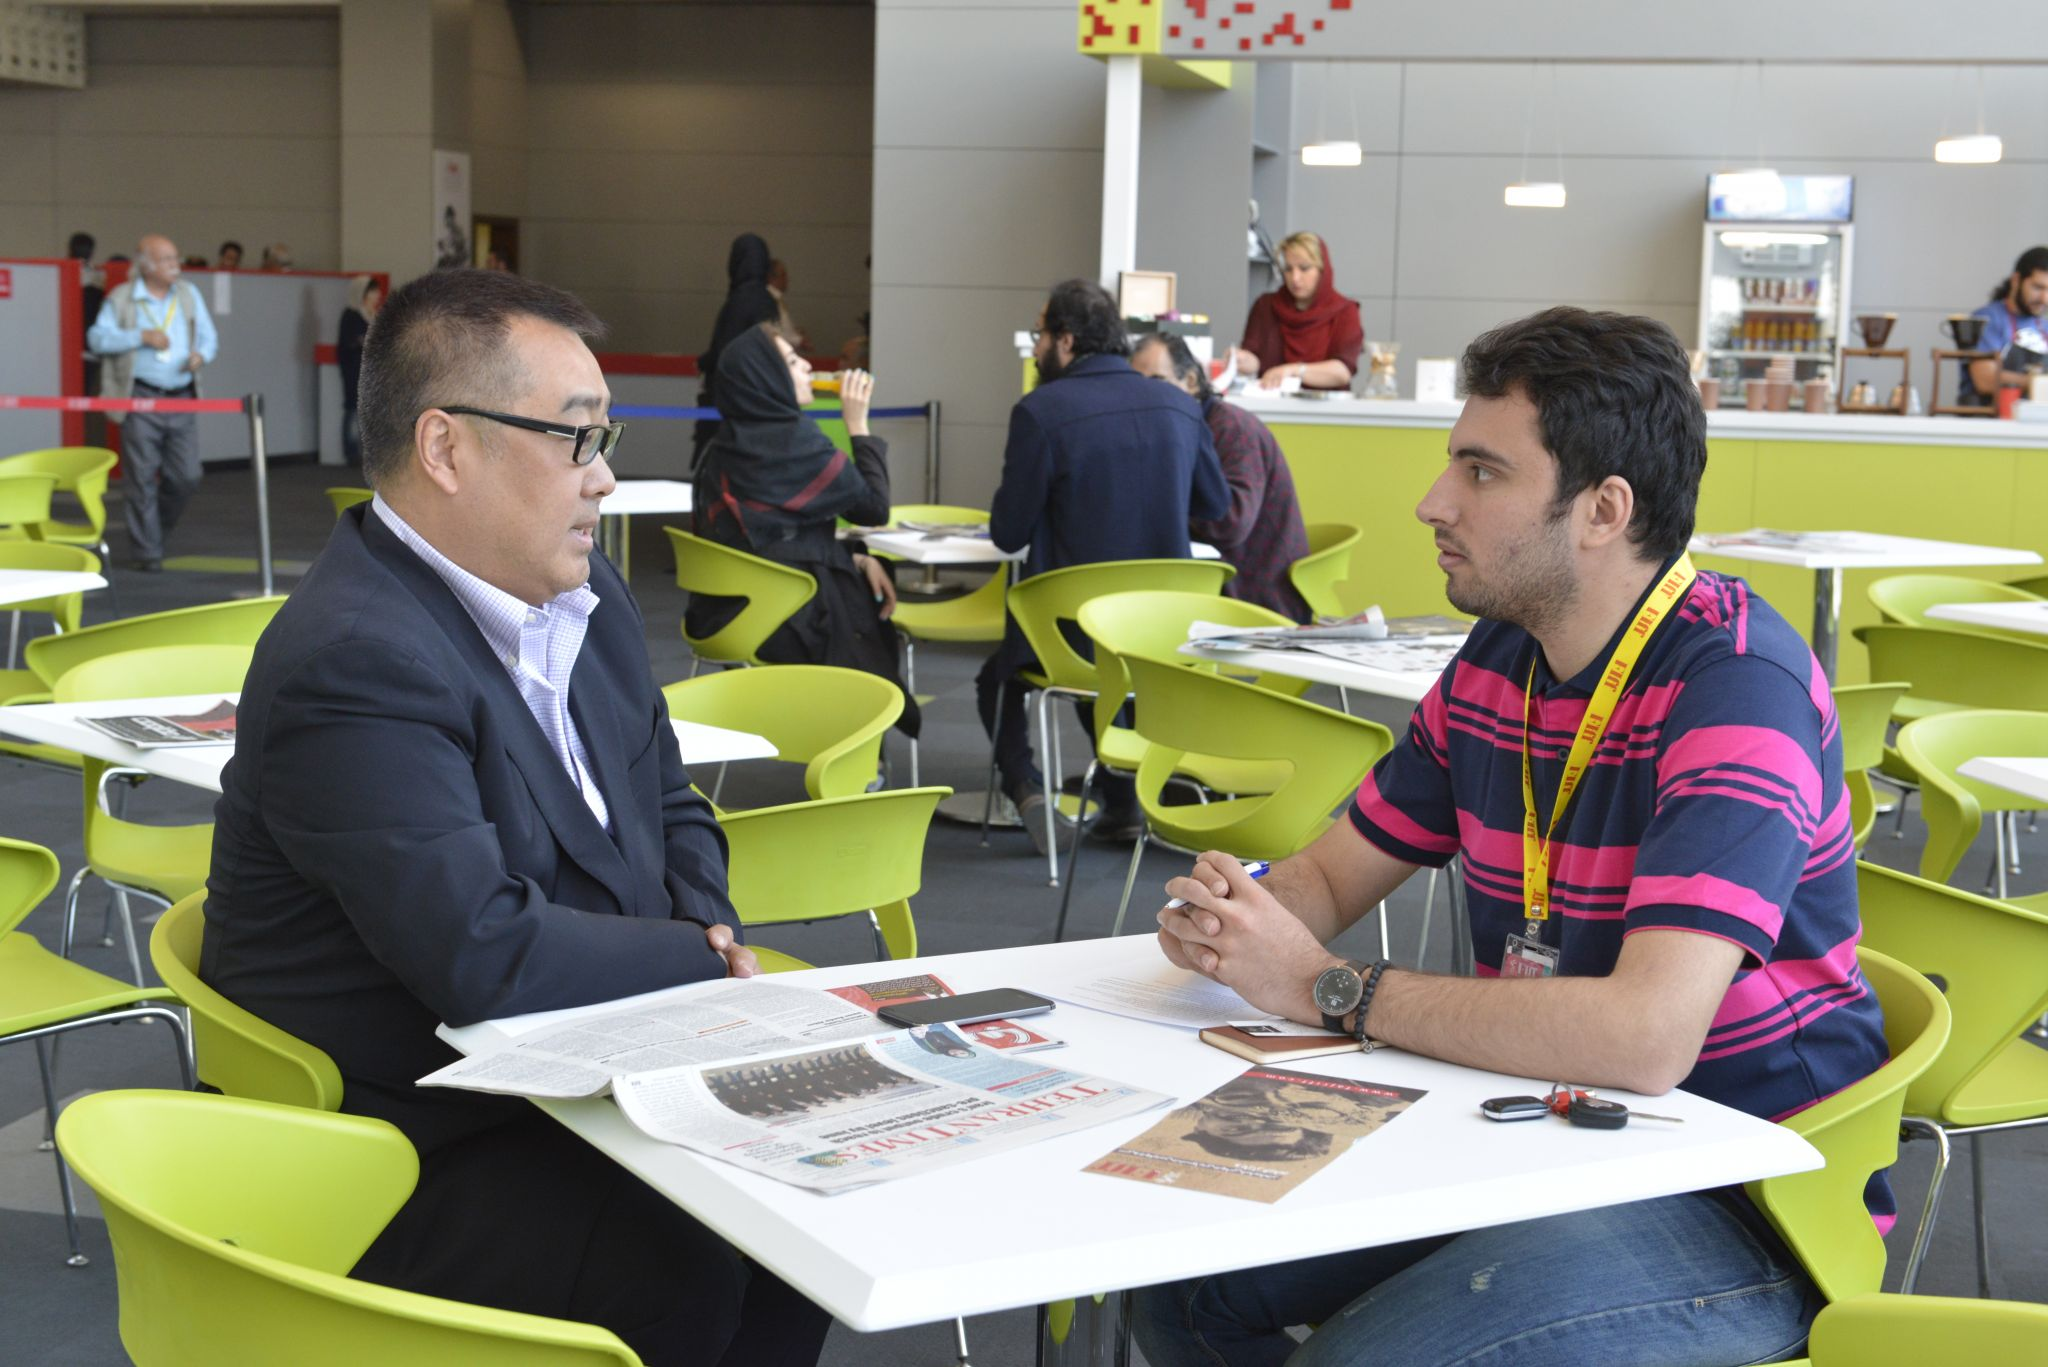 An interview with Jonathan Shen, the chairman of Shinework Media  I am in Tehran for the first co-production project between Iran and China with Jet Lee performance